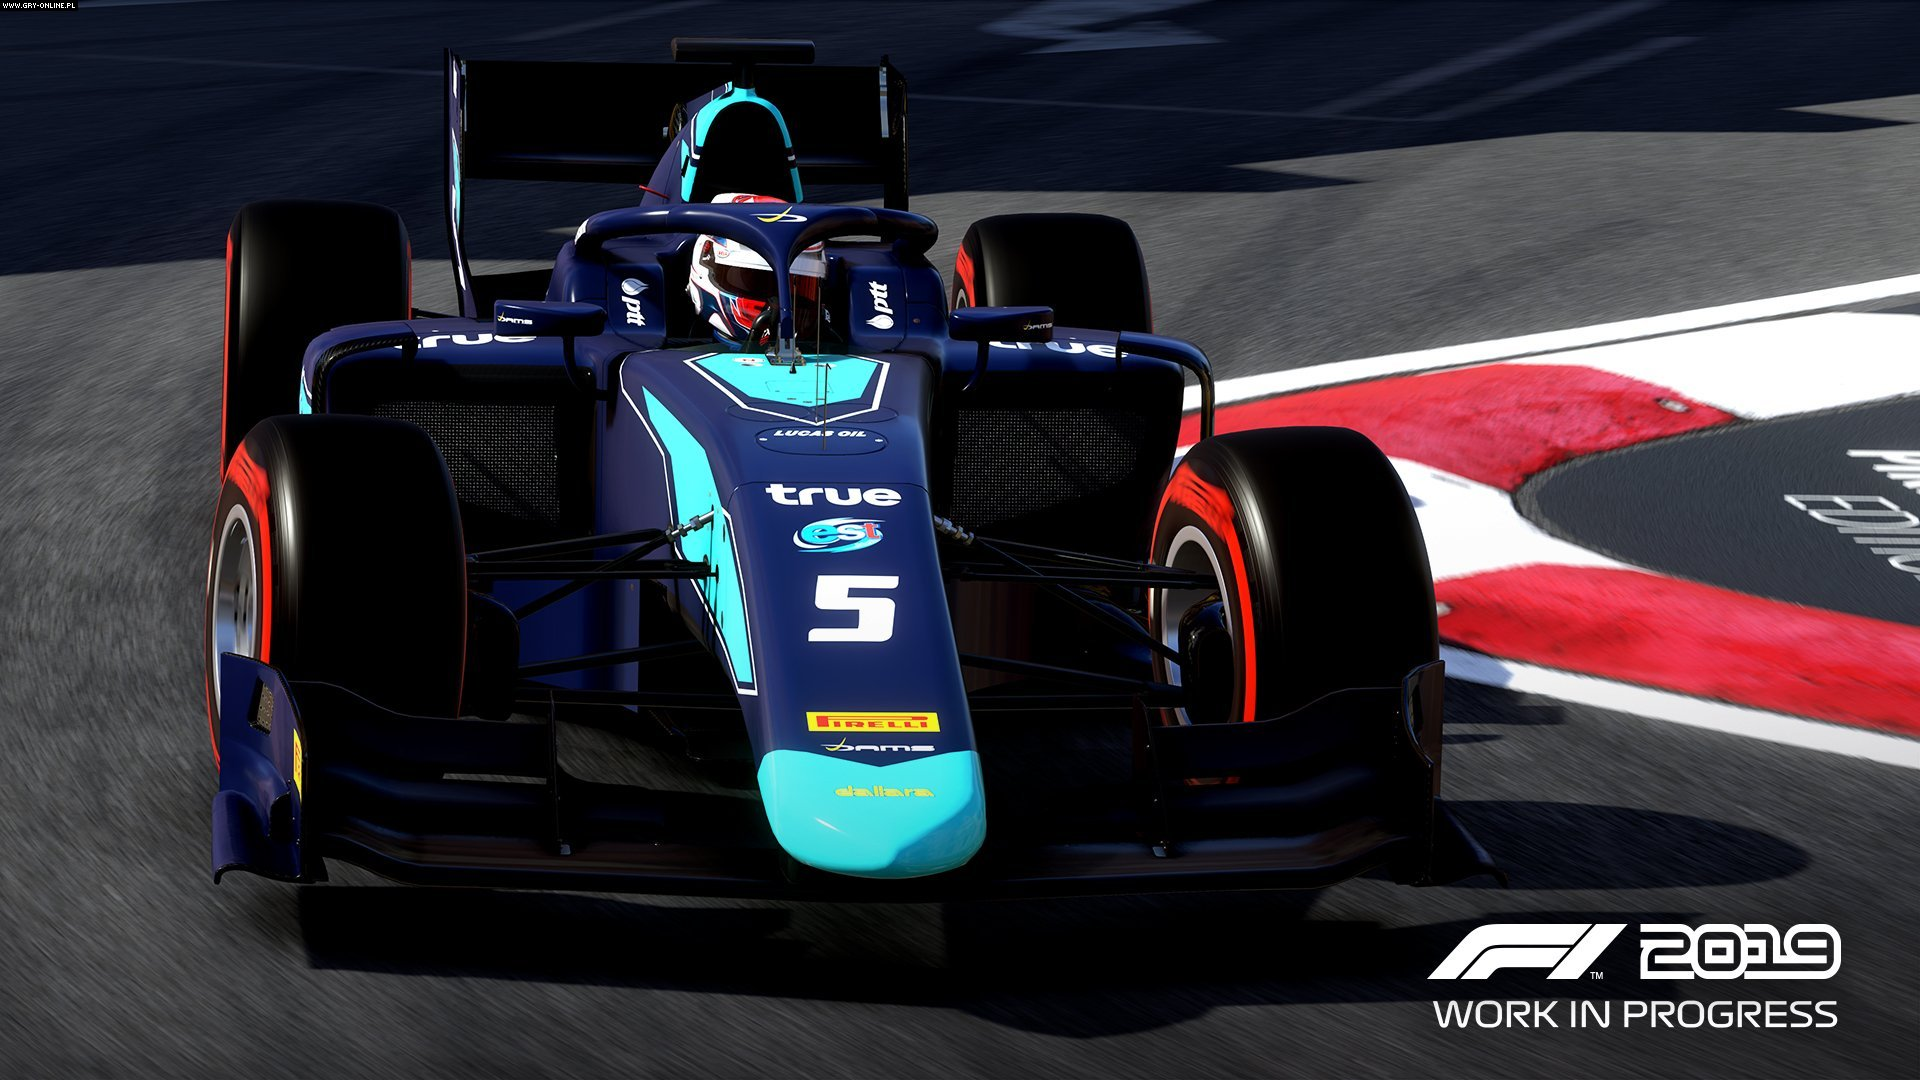 F1 2019 PC, PS4, XONE Games Image 75/104, Codemasters Software